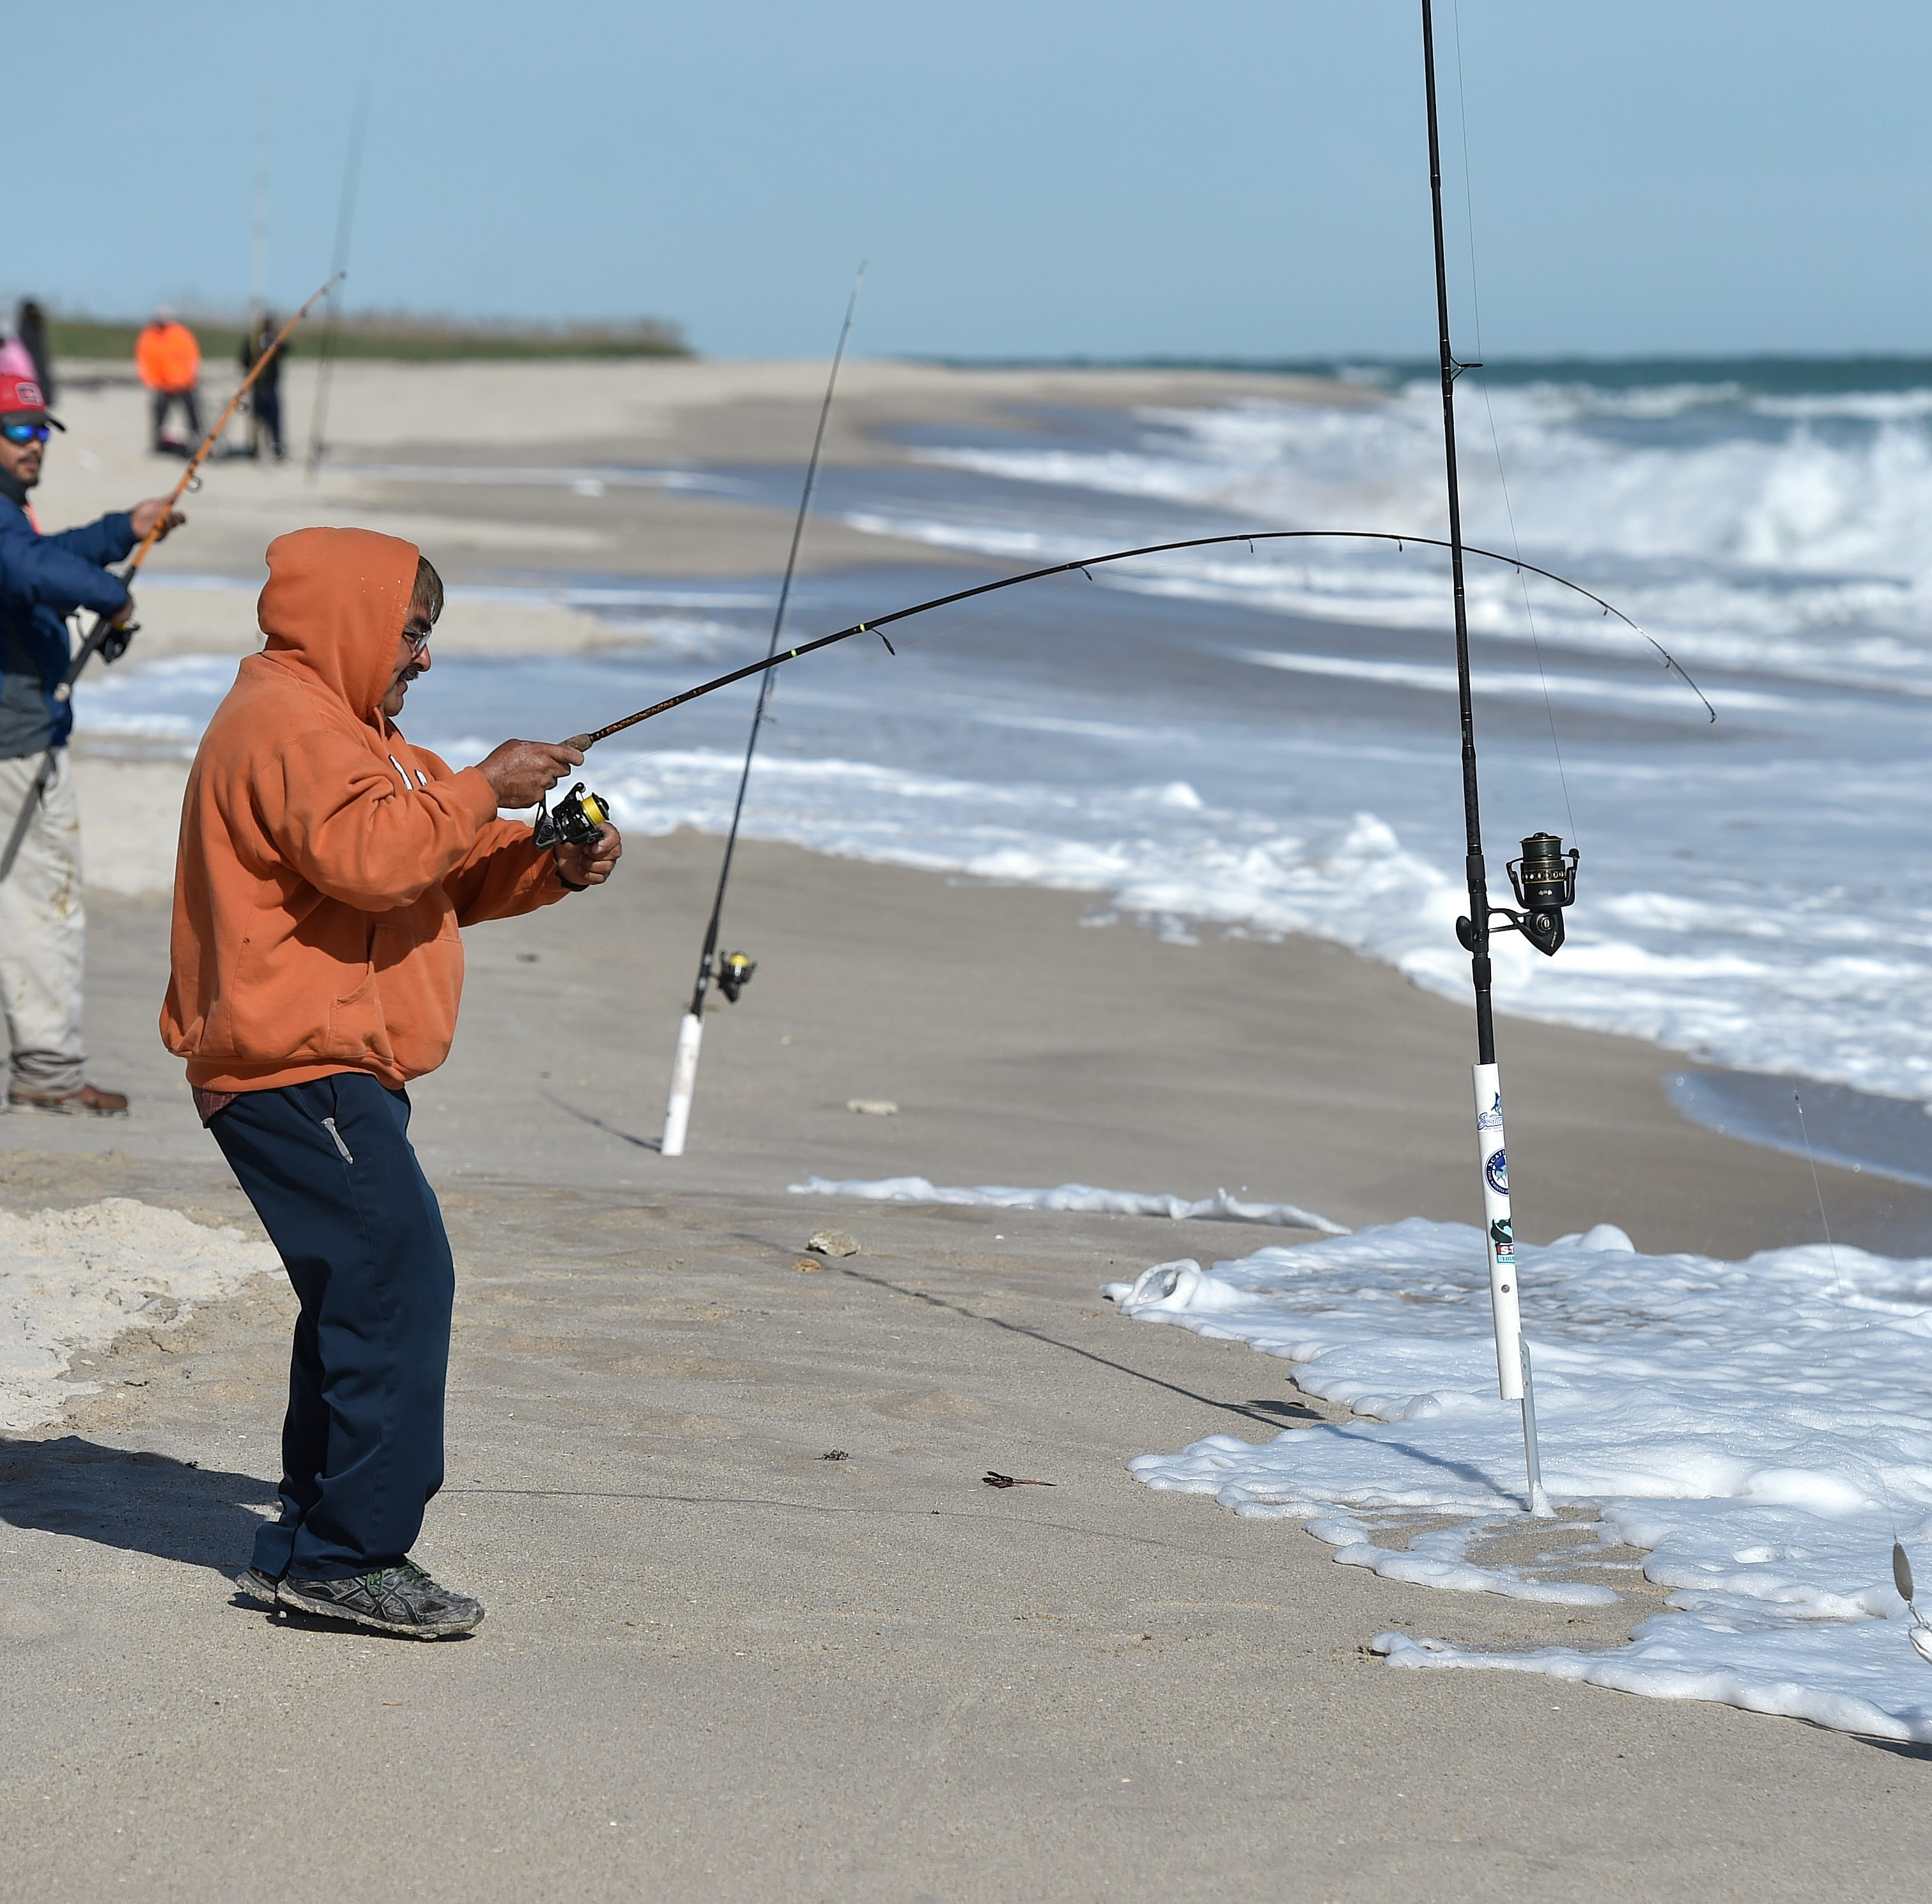 Vero Beach breaks record low as temperatures drop into 30s, 40s across Treasure, Space coasts